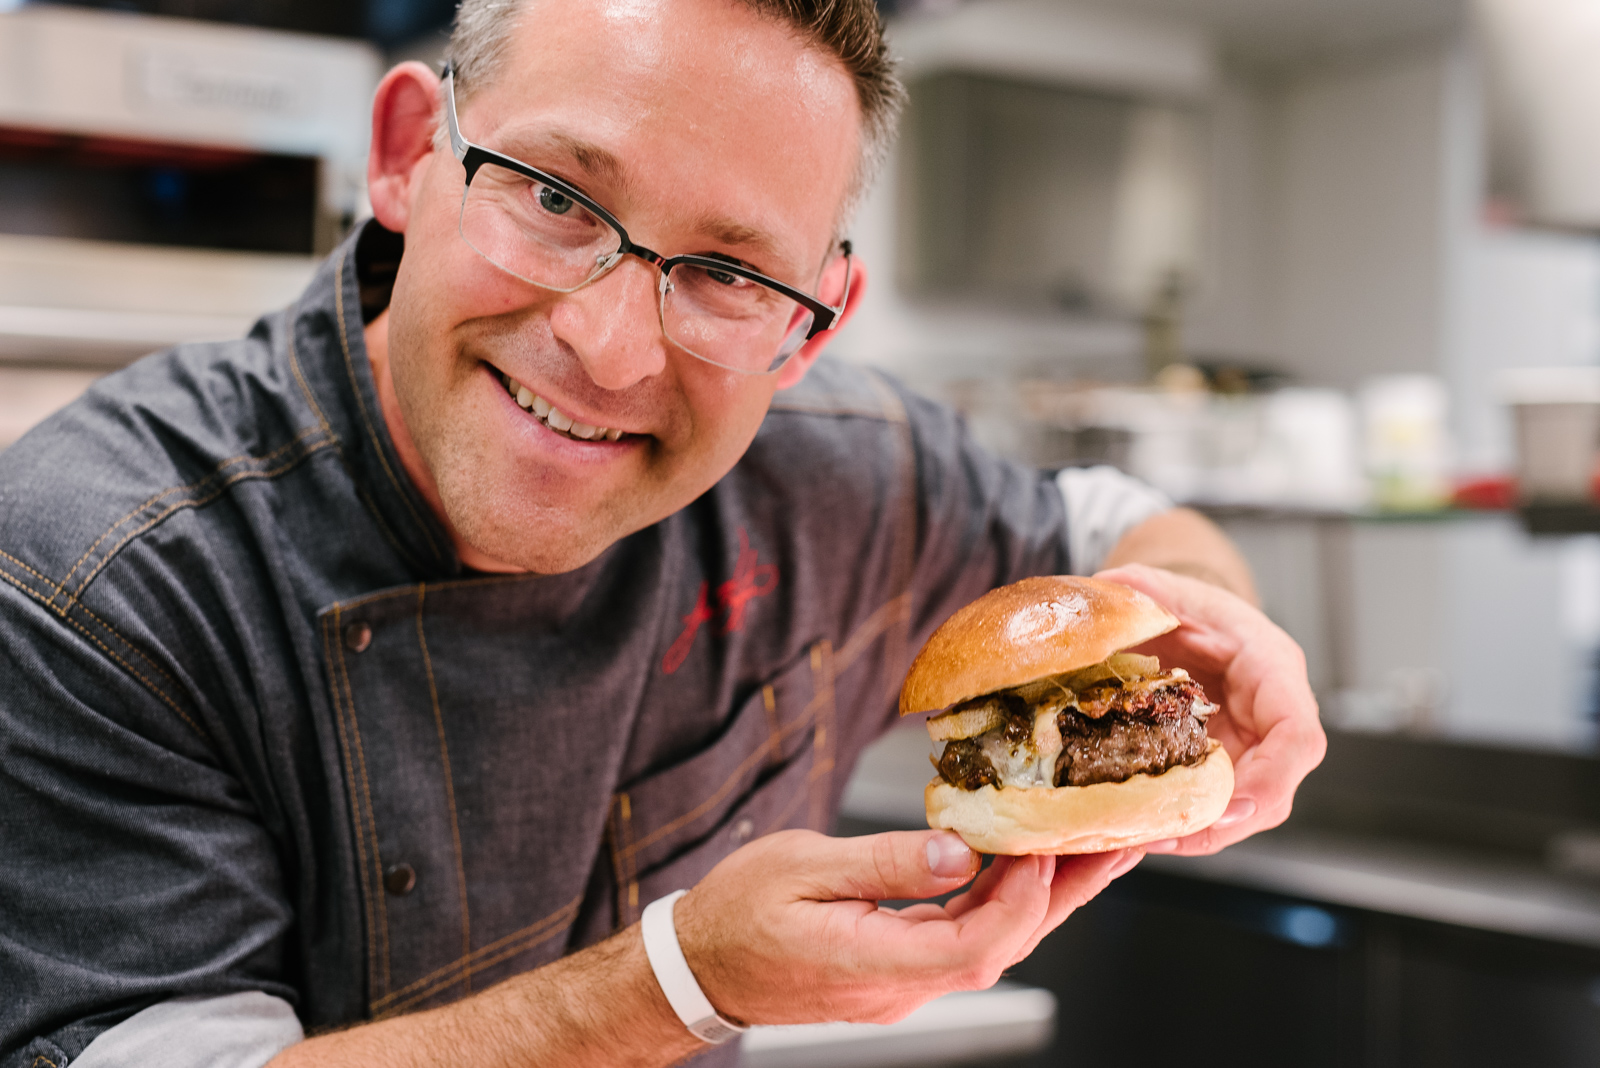 Chef holding his burger proud